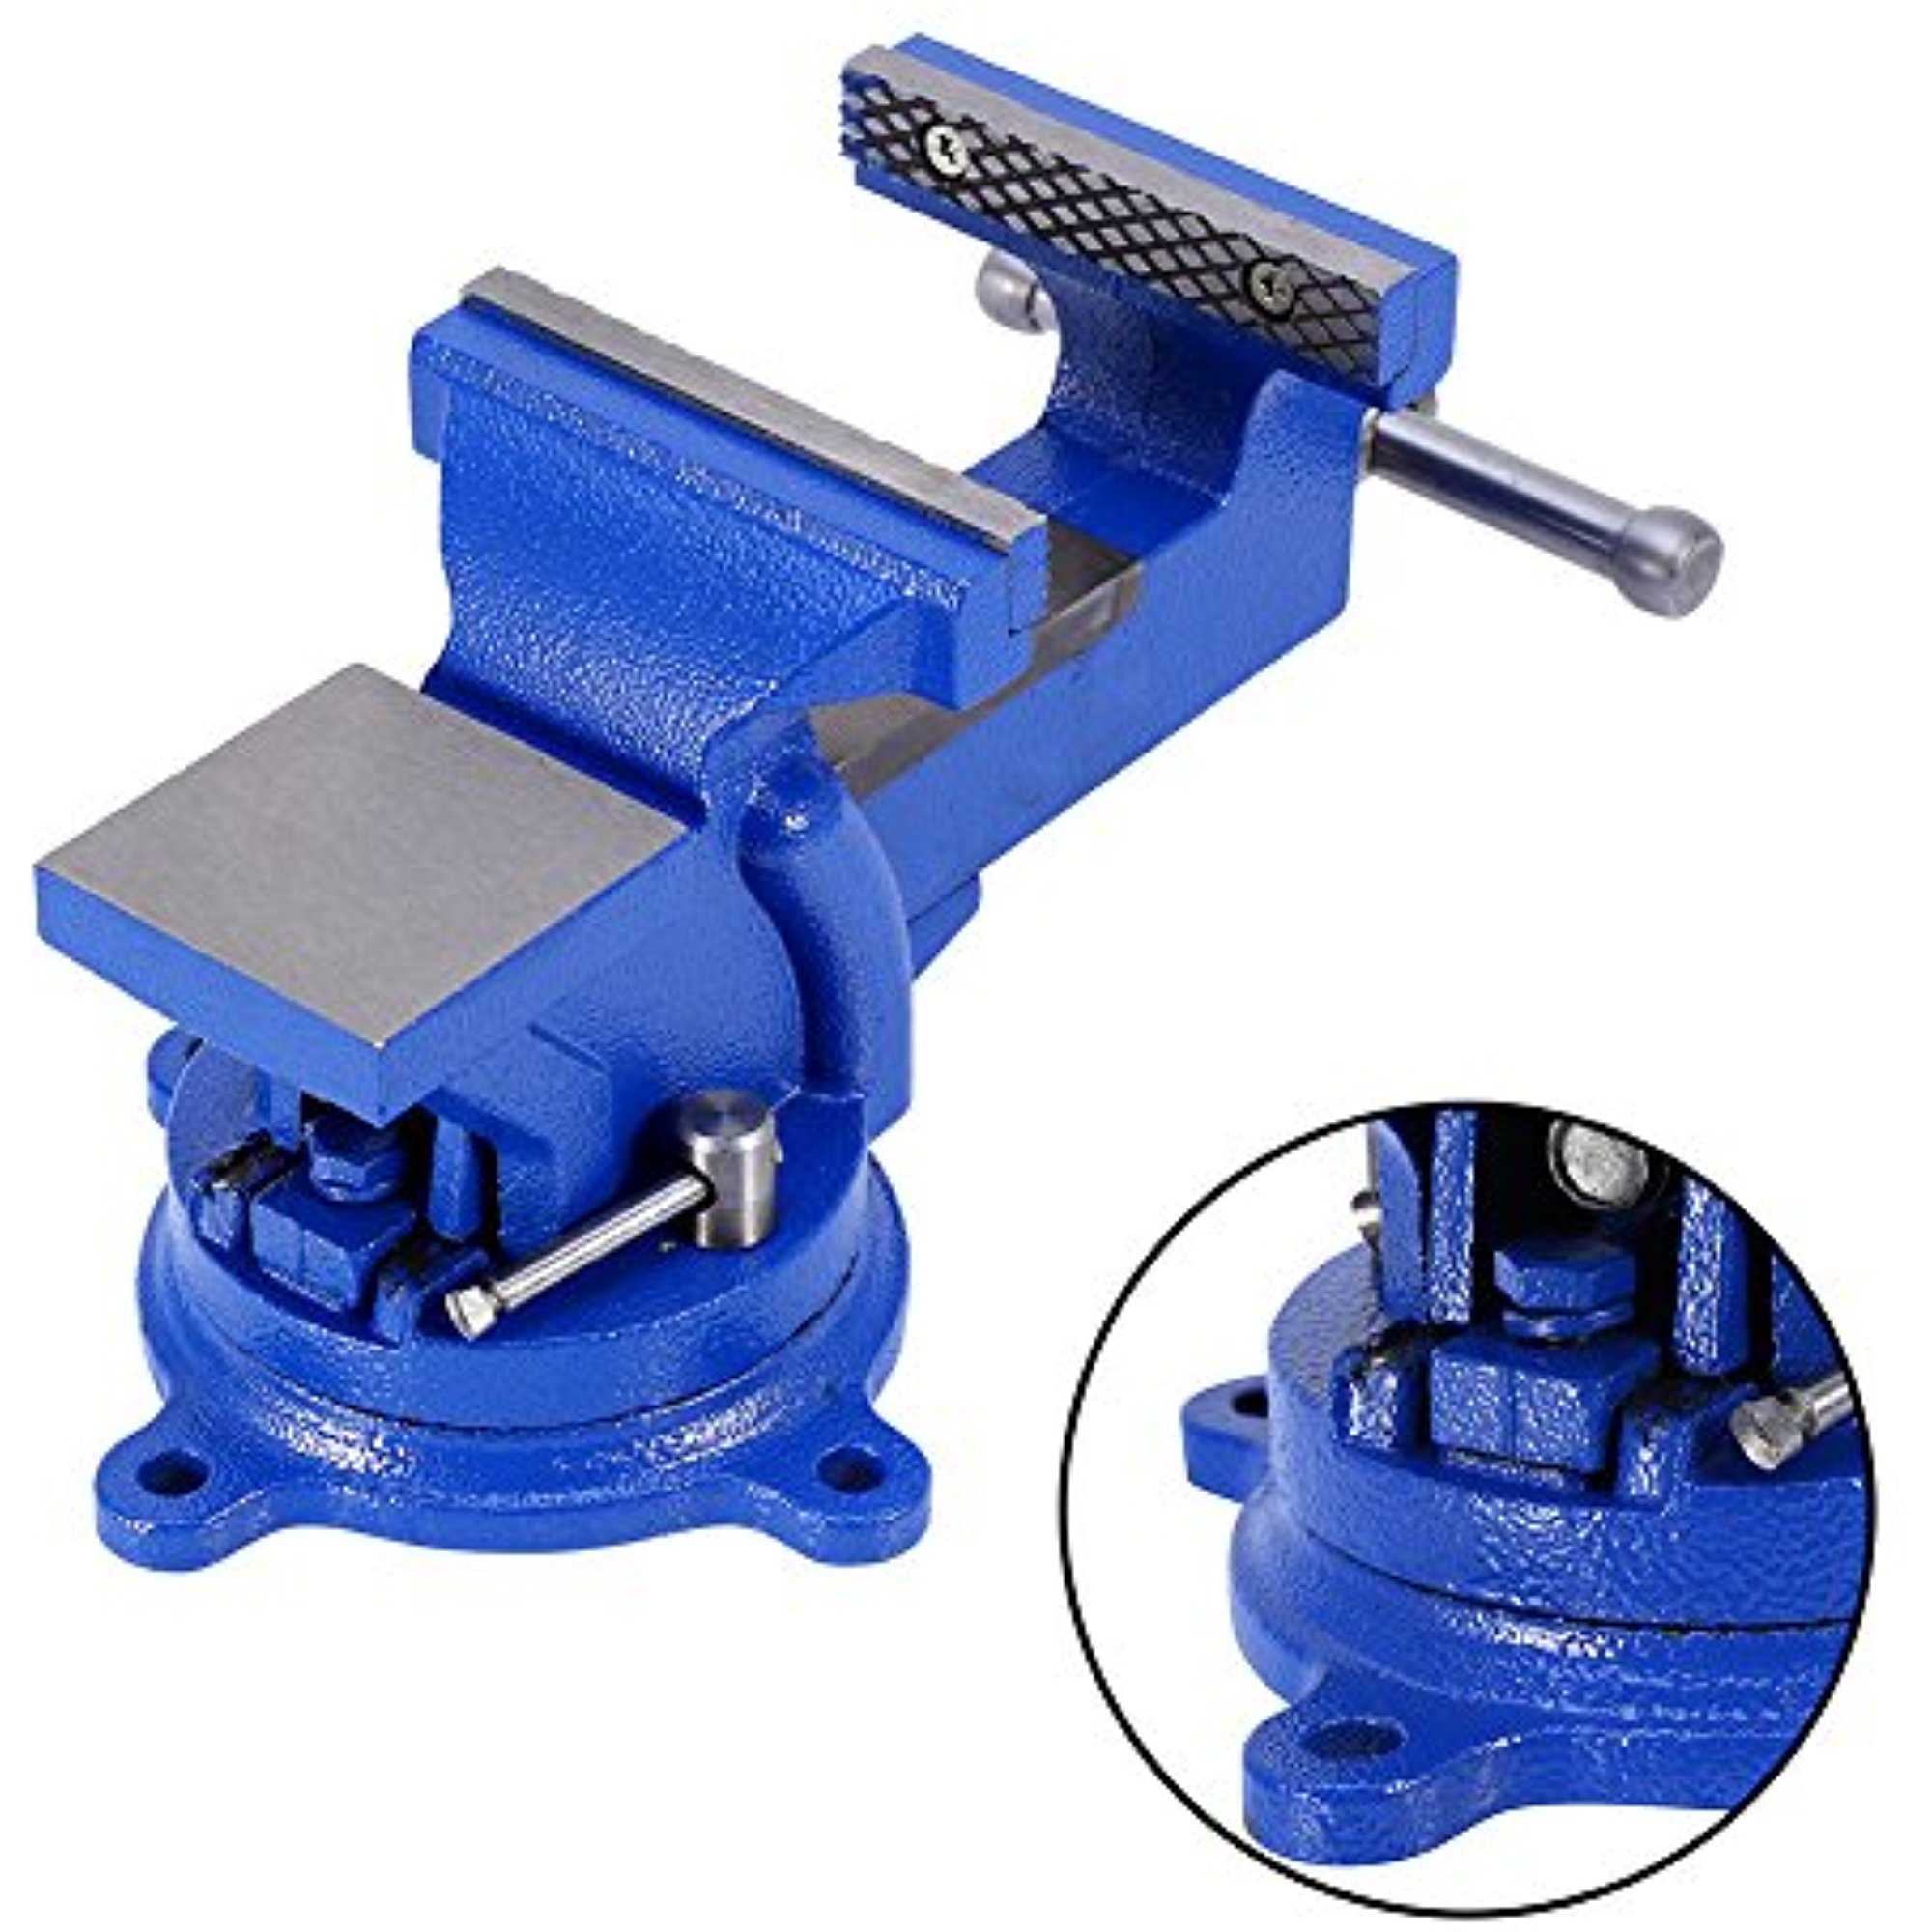 """Bench Vise Clamp,4"""" 100mm Mechanic Work Shop Table Top Clamp Press Locking Swivel Base Cast Iron Tool by"""